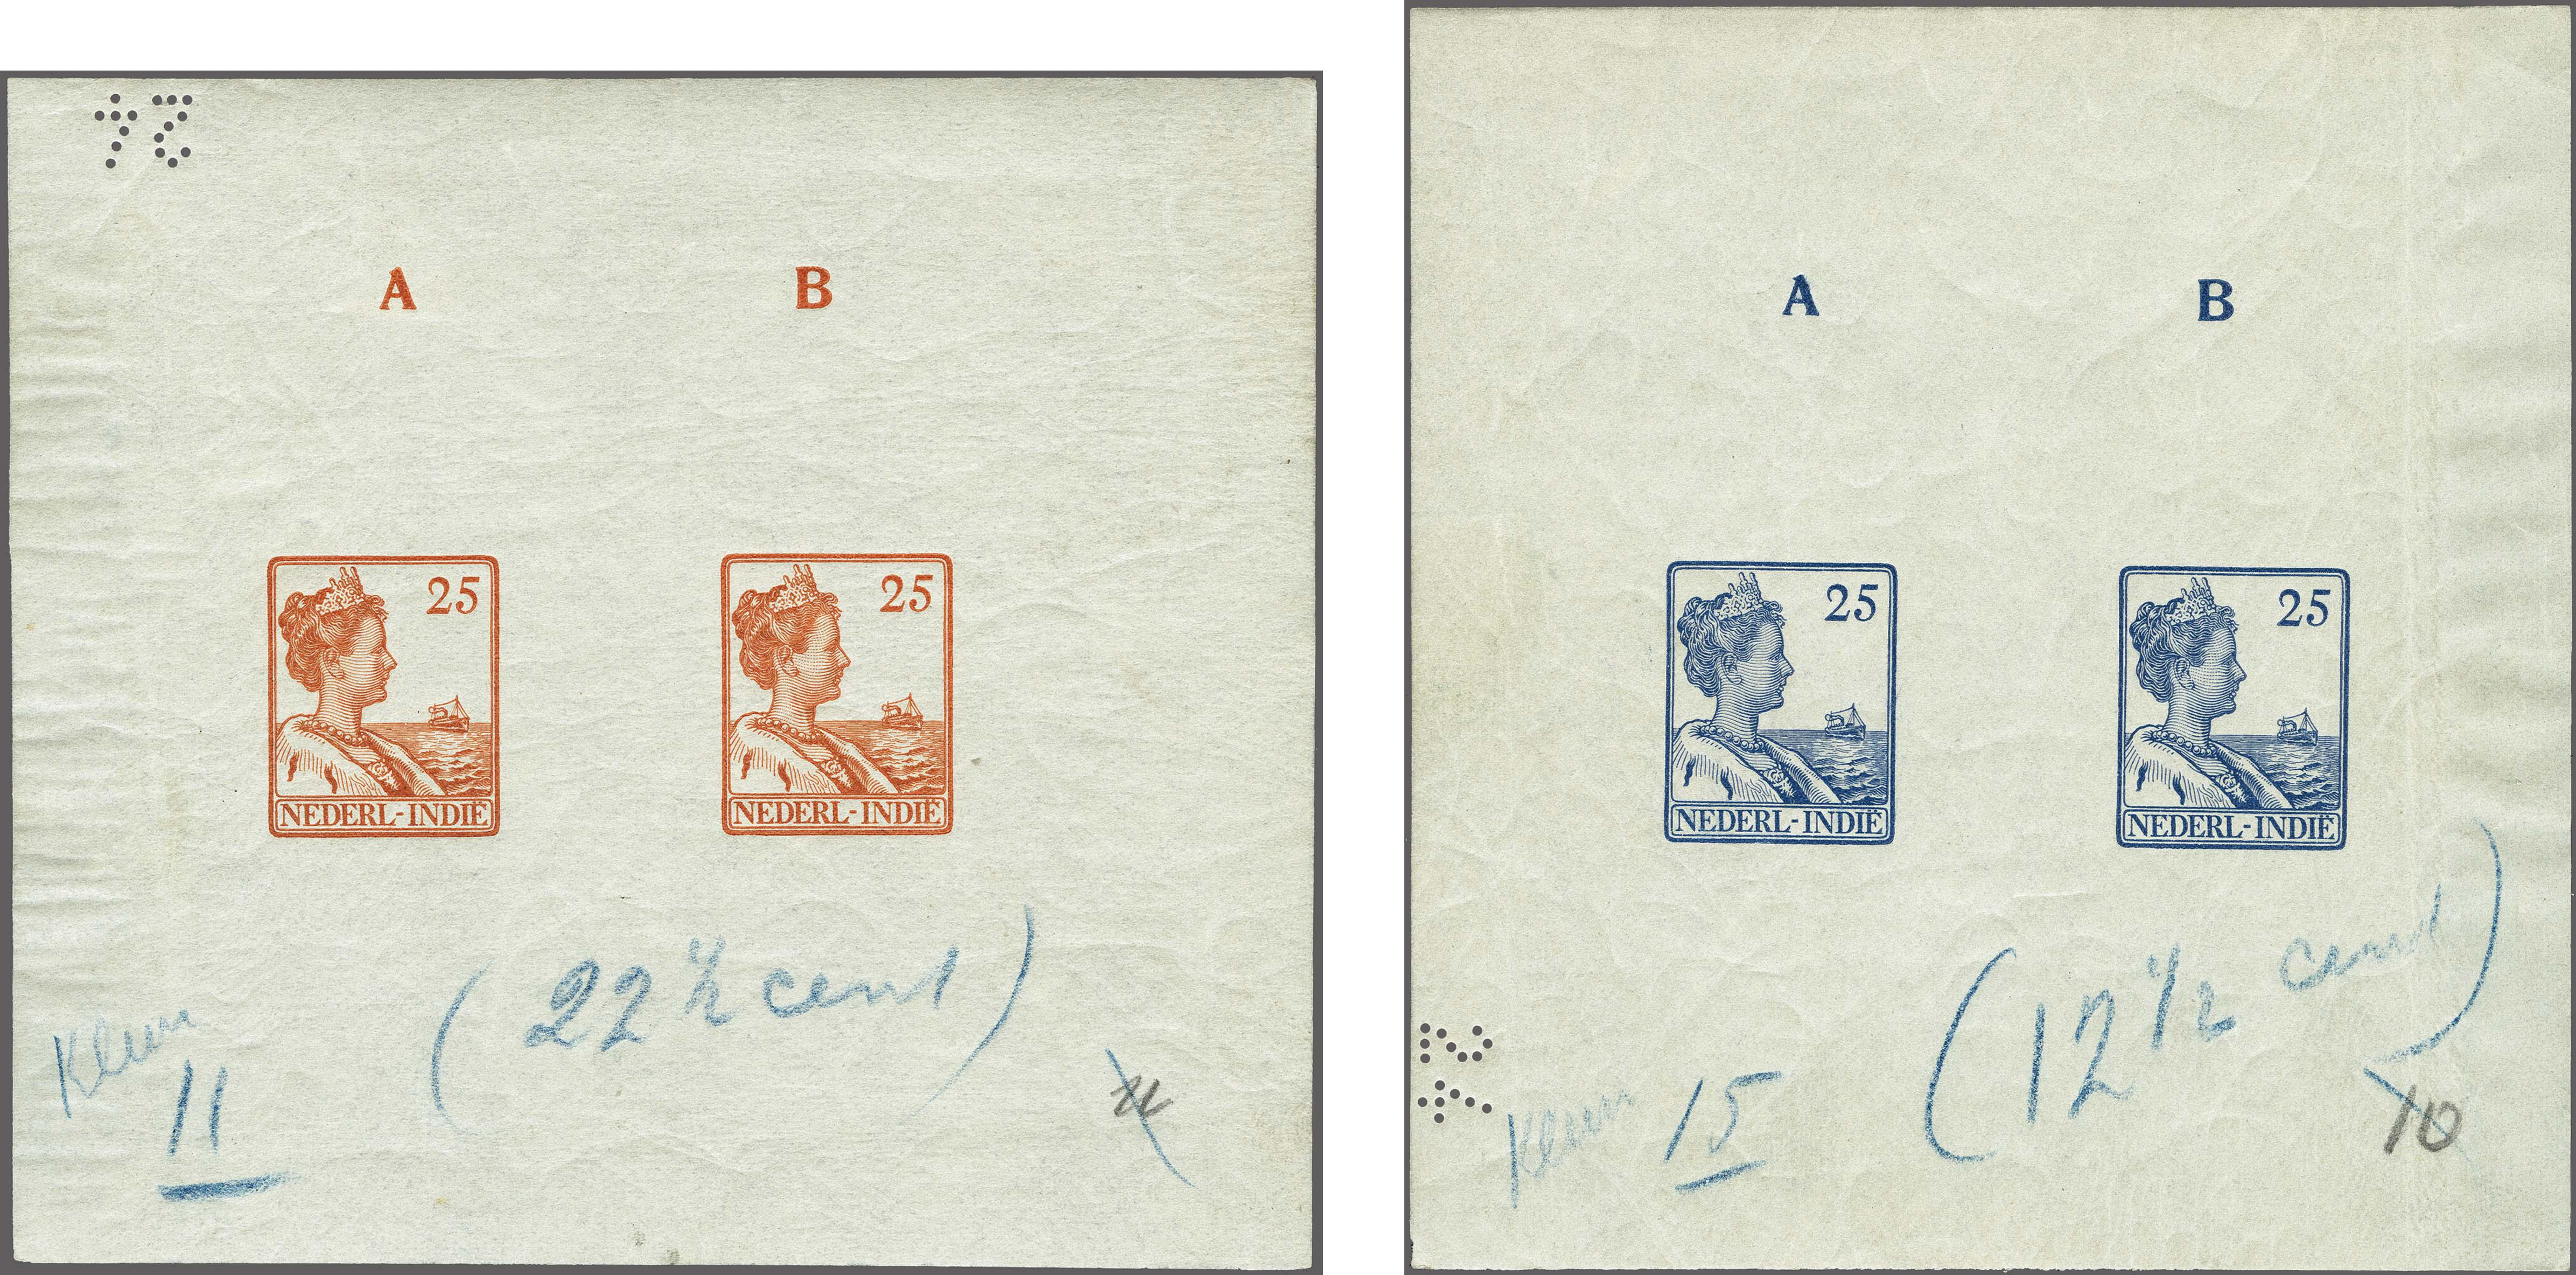 Lot 3323 - Netherlands and former colonies Netherlands Indies -  Corinphila Veilingen Auction 250-253 - Day 4 - Proofs of Netherlands former colonies